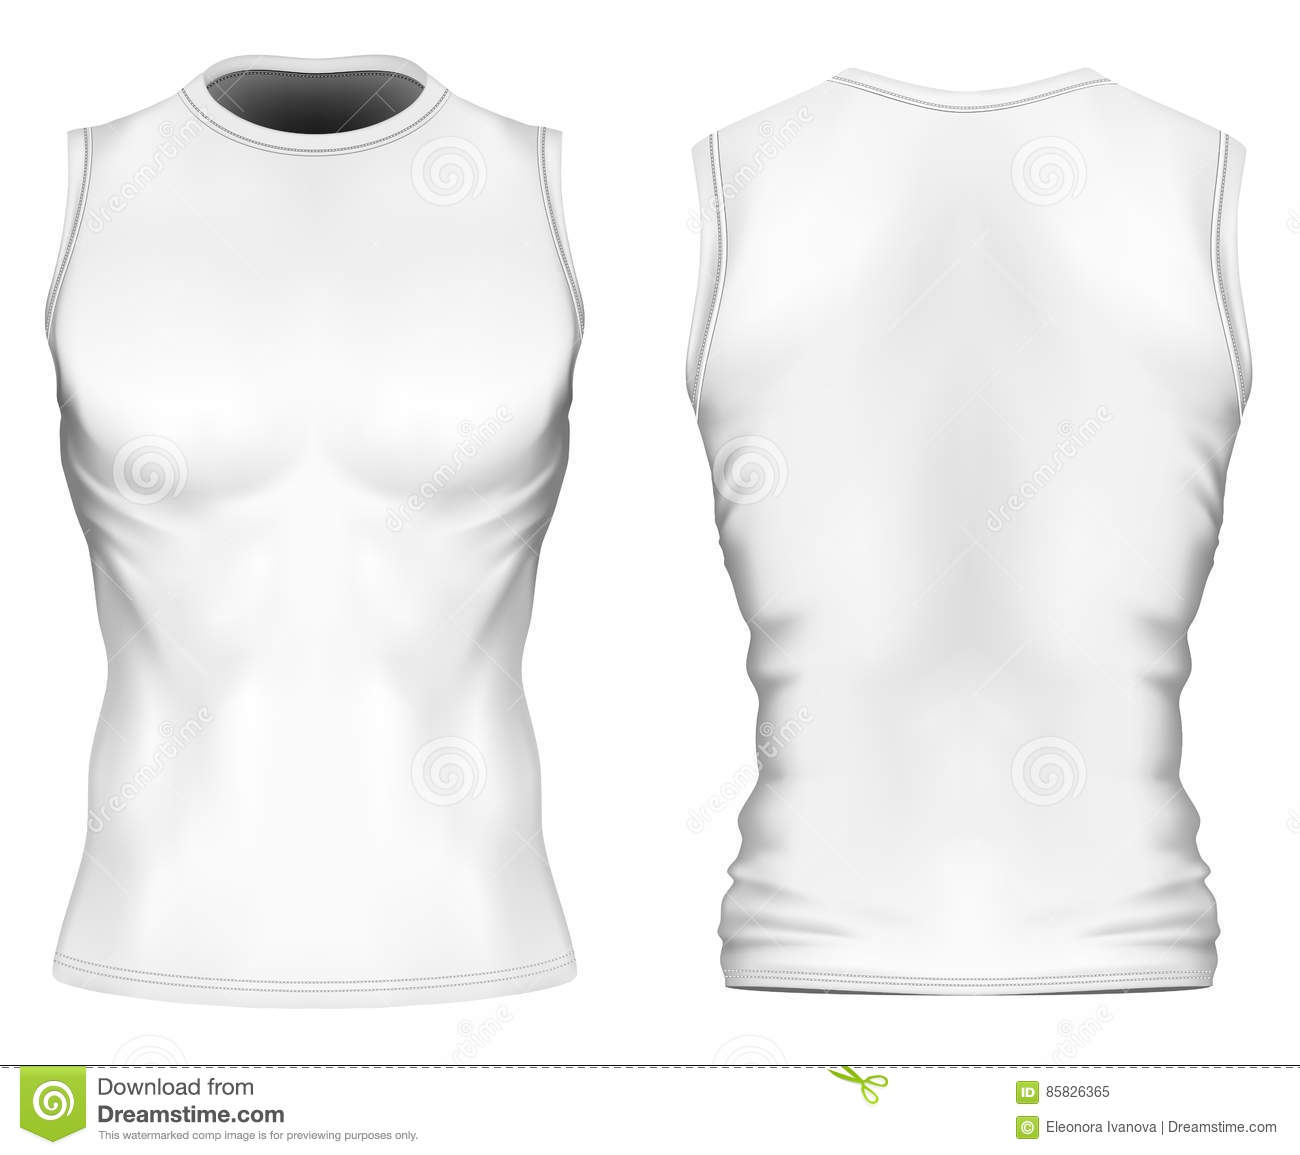 78c063bbad5bb Sleeveless t-shirt with round neck on the mens sports figure. Front and back  views of White variants Vector illustration. Fully editable handmade mesh